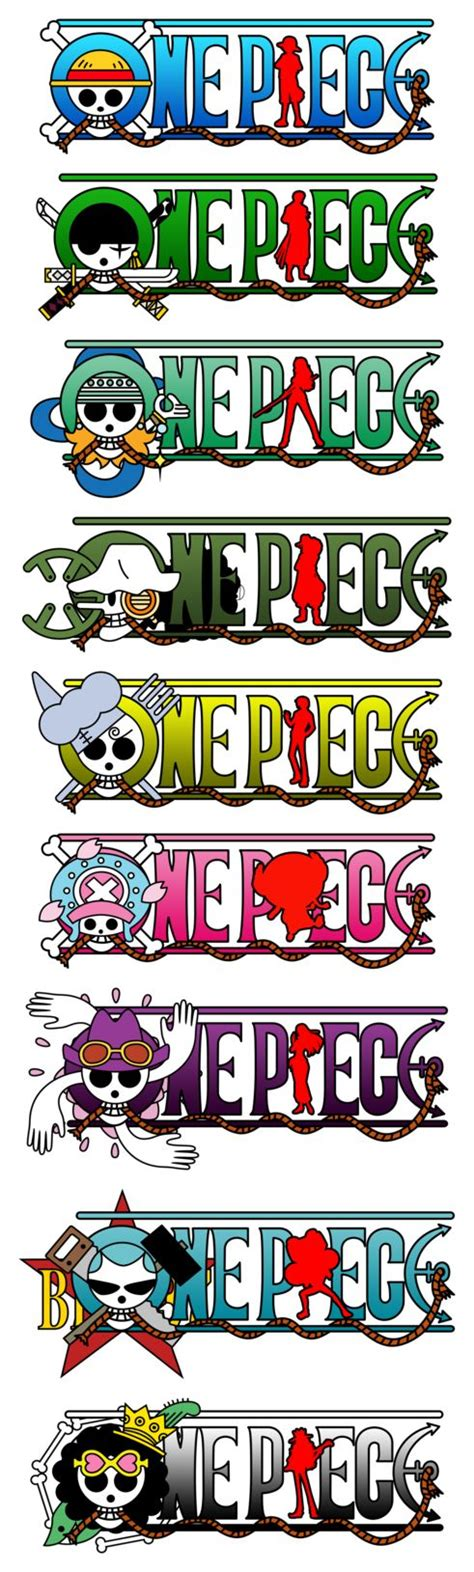 Logo Anime Luffy one logos straw hats pirate crew monkey d luffy